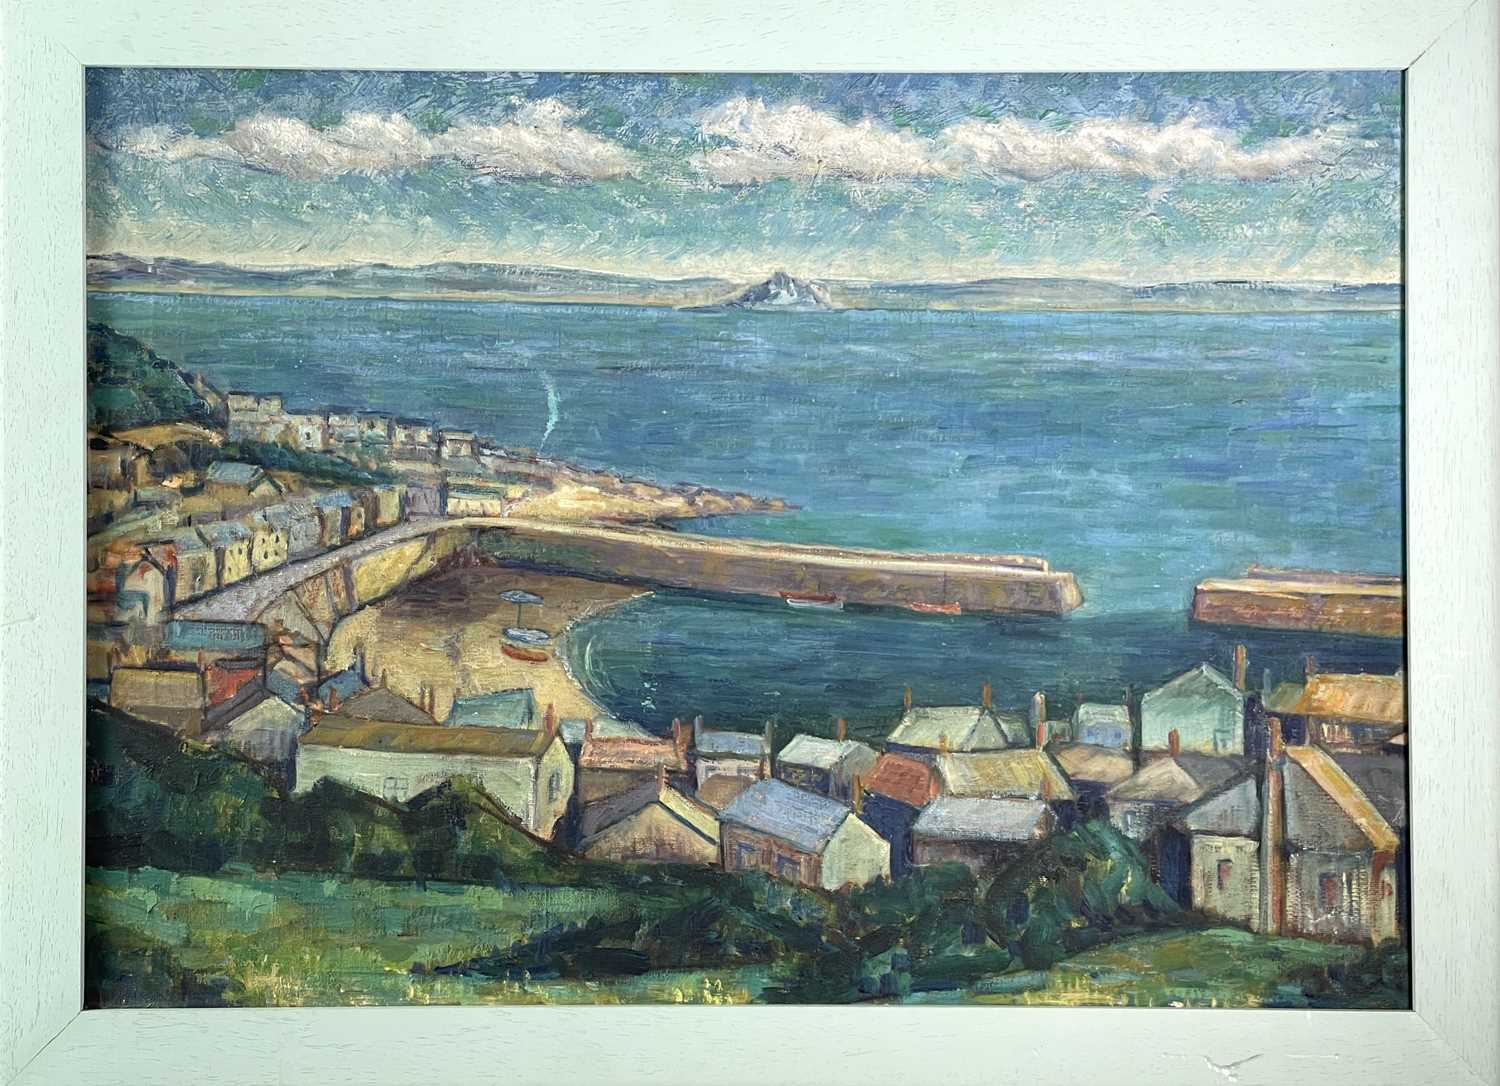 Newlyn School A View of Mounts Bay Overlooking Mousehole Harbour Oil on canvas 50 x 70cm - Image 3 of 3